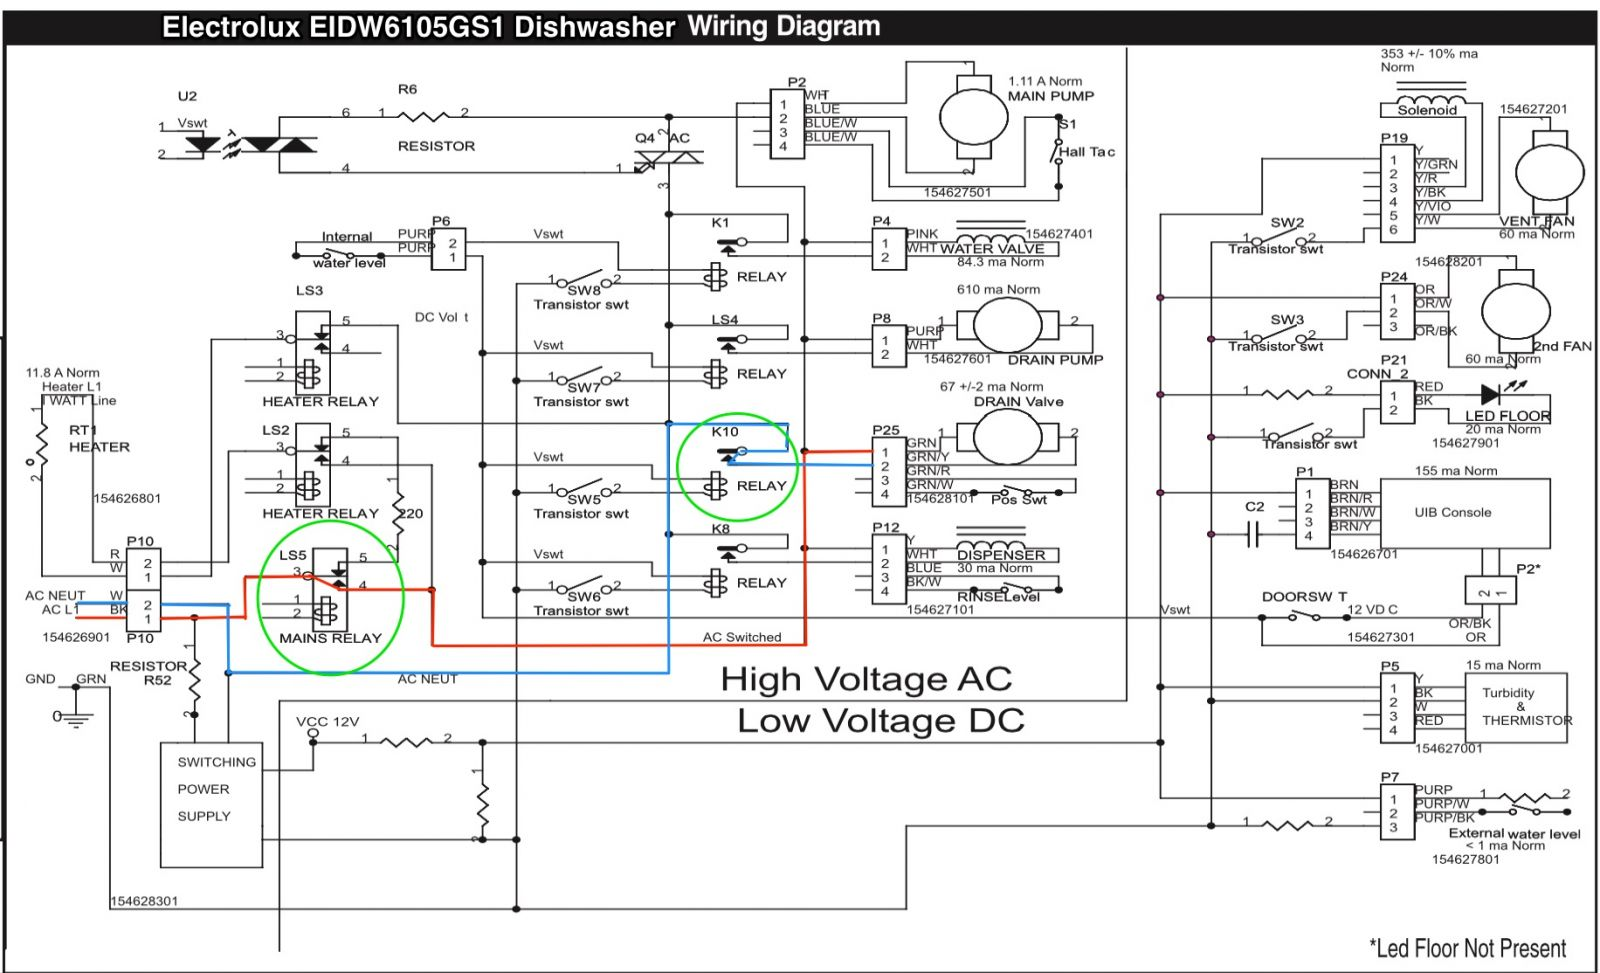 [SCHEMATICS_48YU]  DIAGRAM] Hotpoint Dishwasher Wiring Diagram FULL Version HD Quality Wiring  Diagram - DDWIRING.LES-CAFES-DERIC-ORLEANS.FR | Hotpoint Dishwasher Wiring Diagram |  | Best Diagram Database